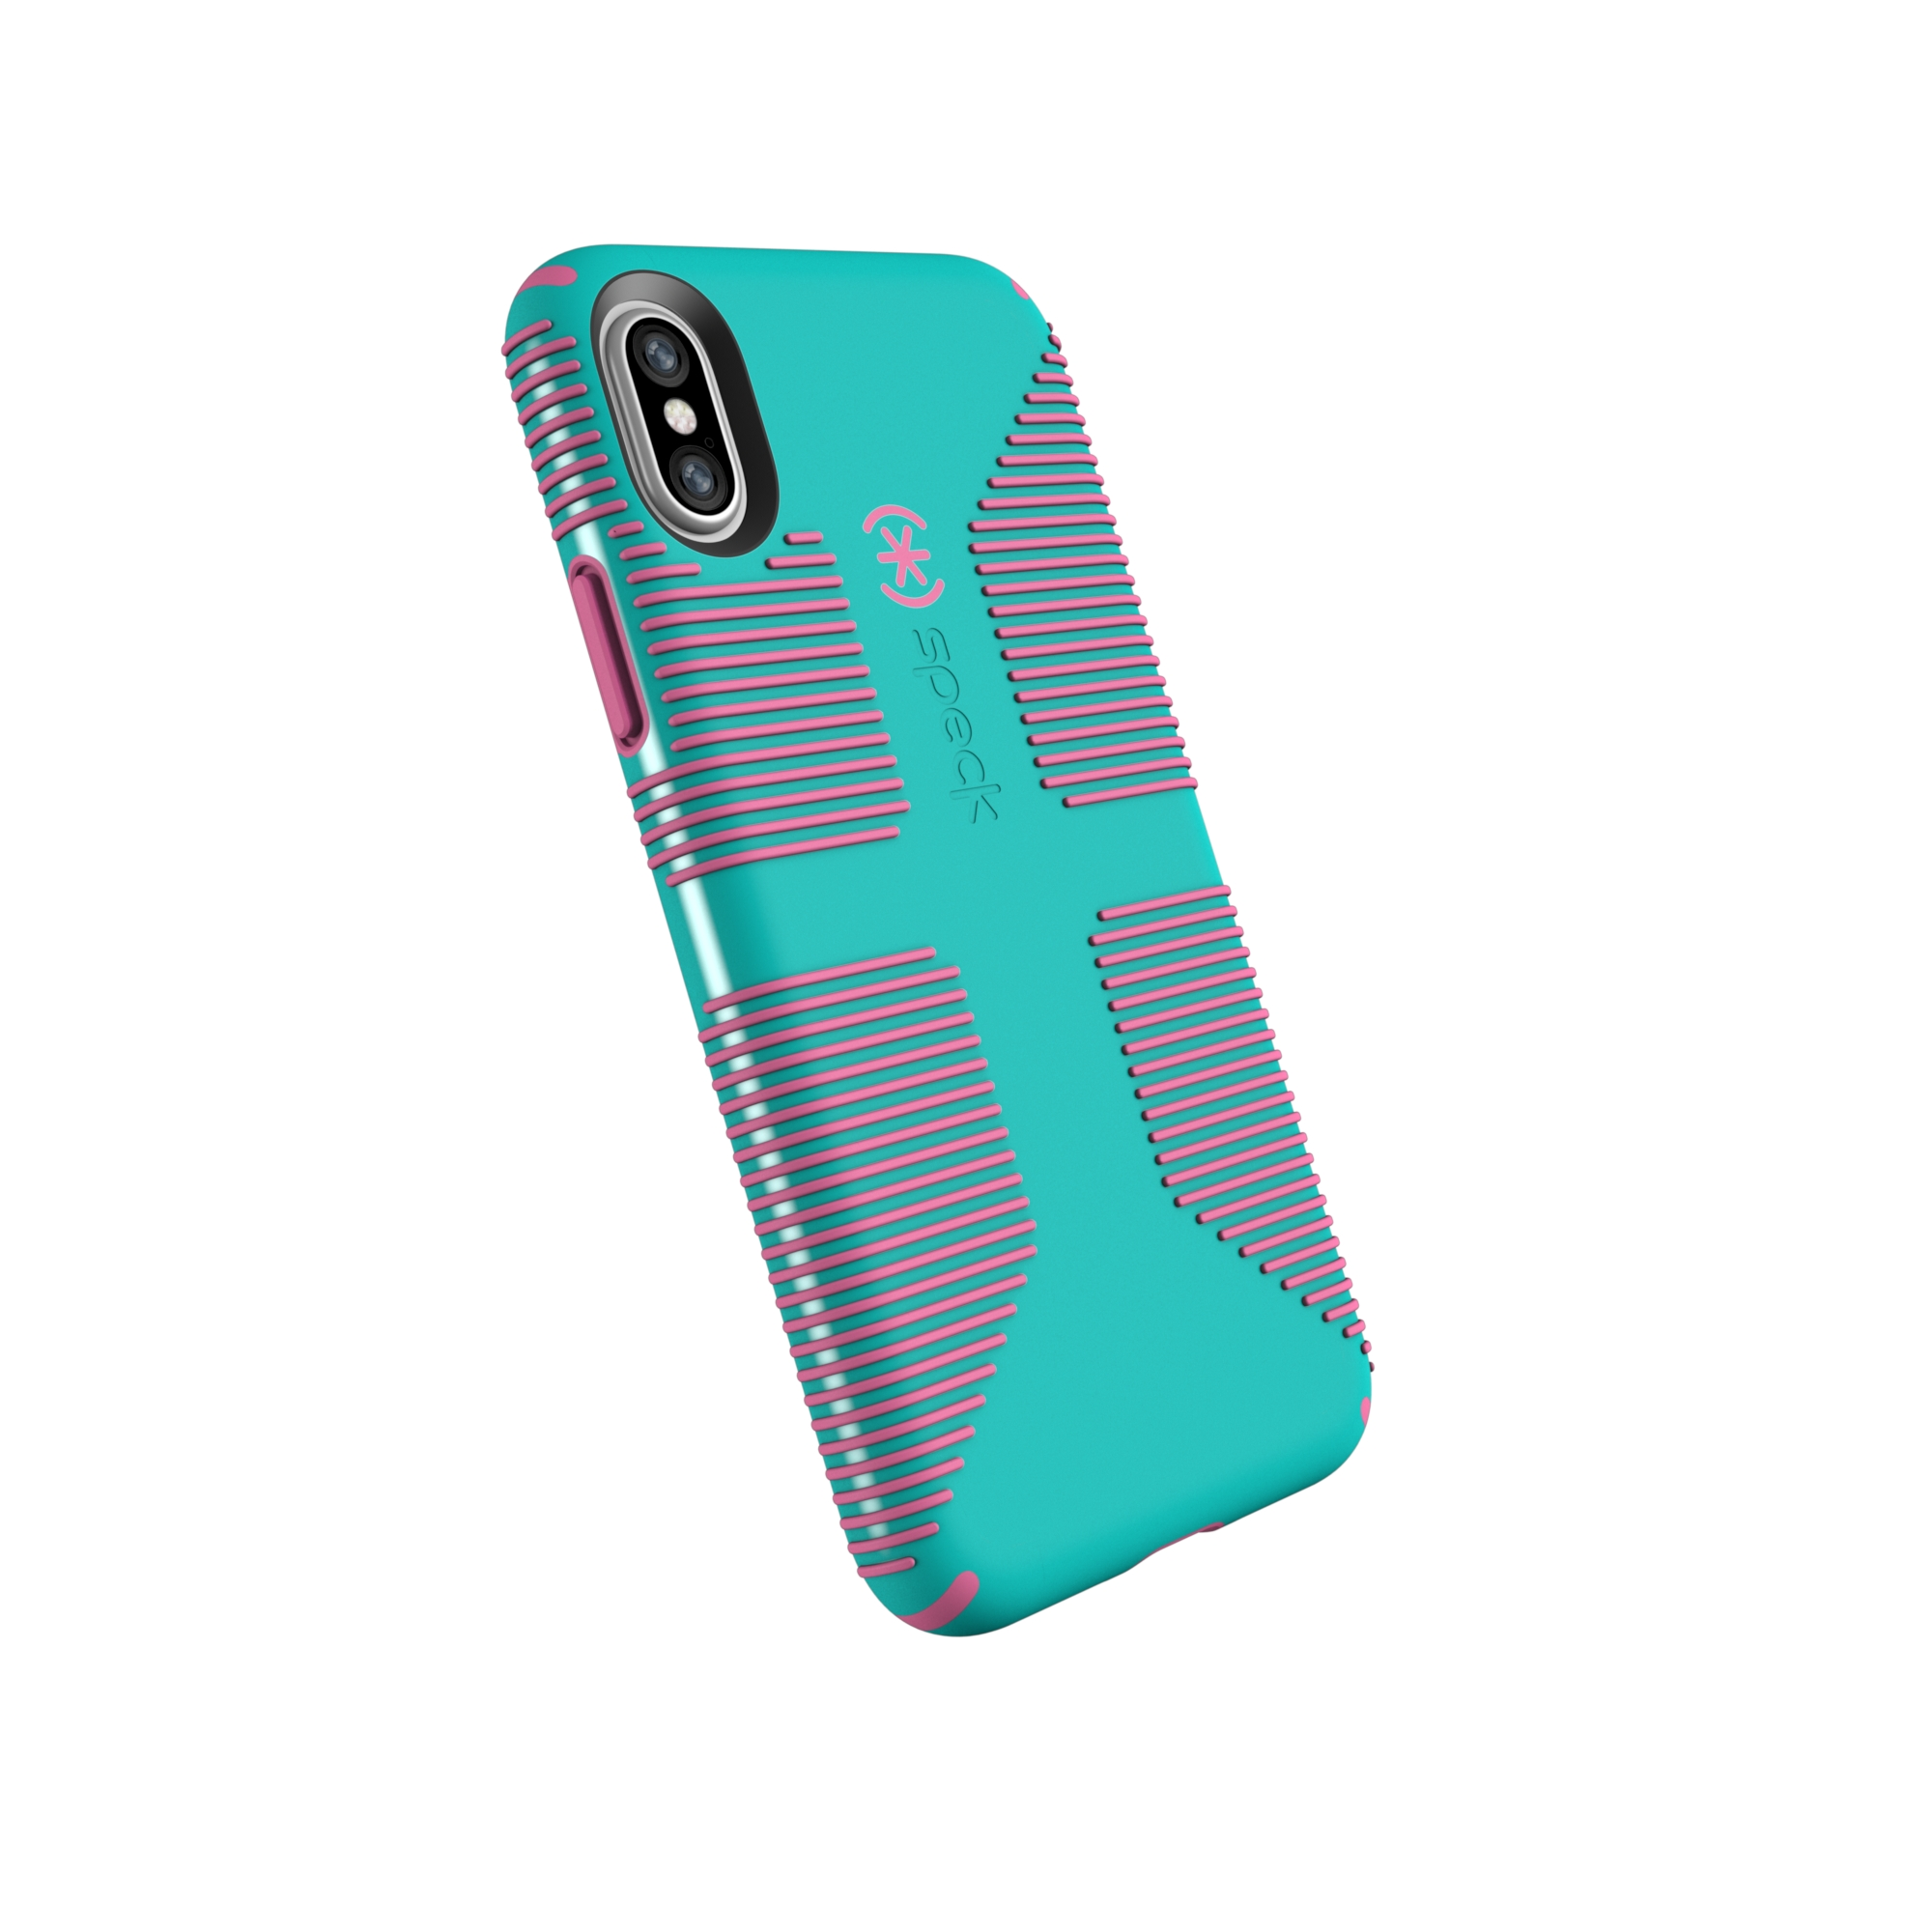 Speck CandyShell Grip Case for iPhone X, Blue and Pink